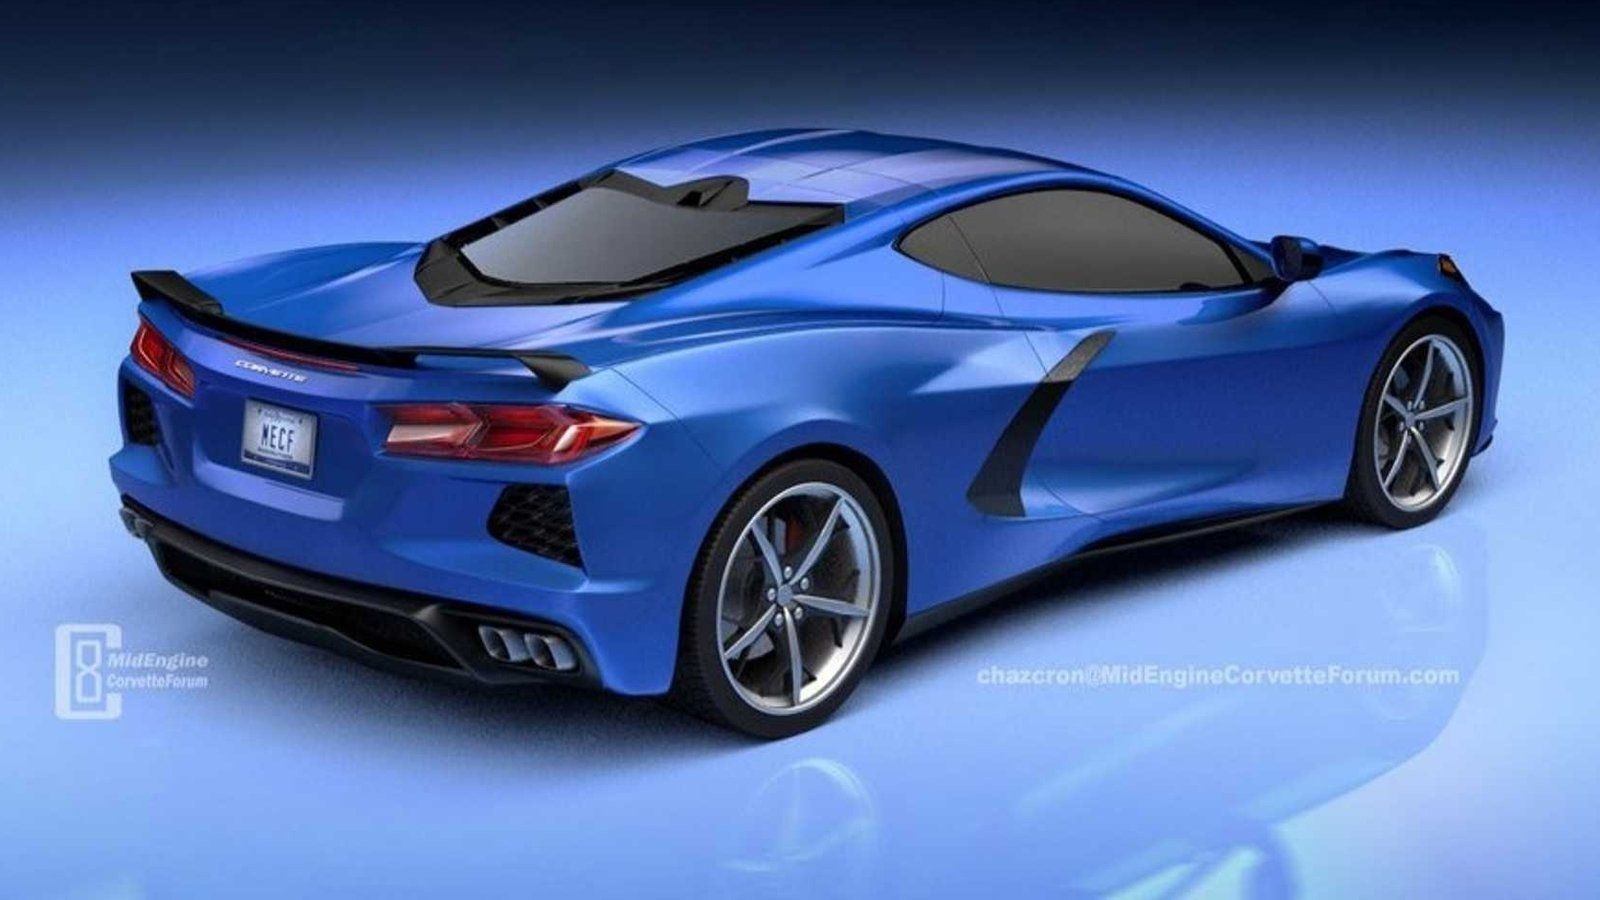 New Rendering Of The Mid Engined 2020 Chevy C8 Corvette Gives Us A More Down To Earth Look Sports Car Corvette Chevy Corvette